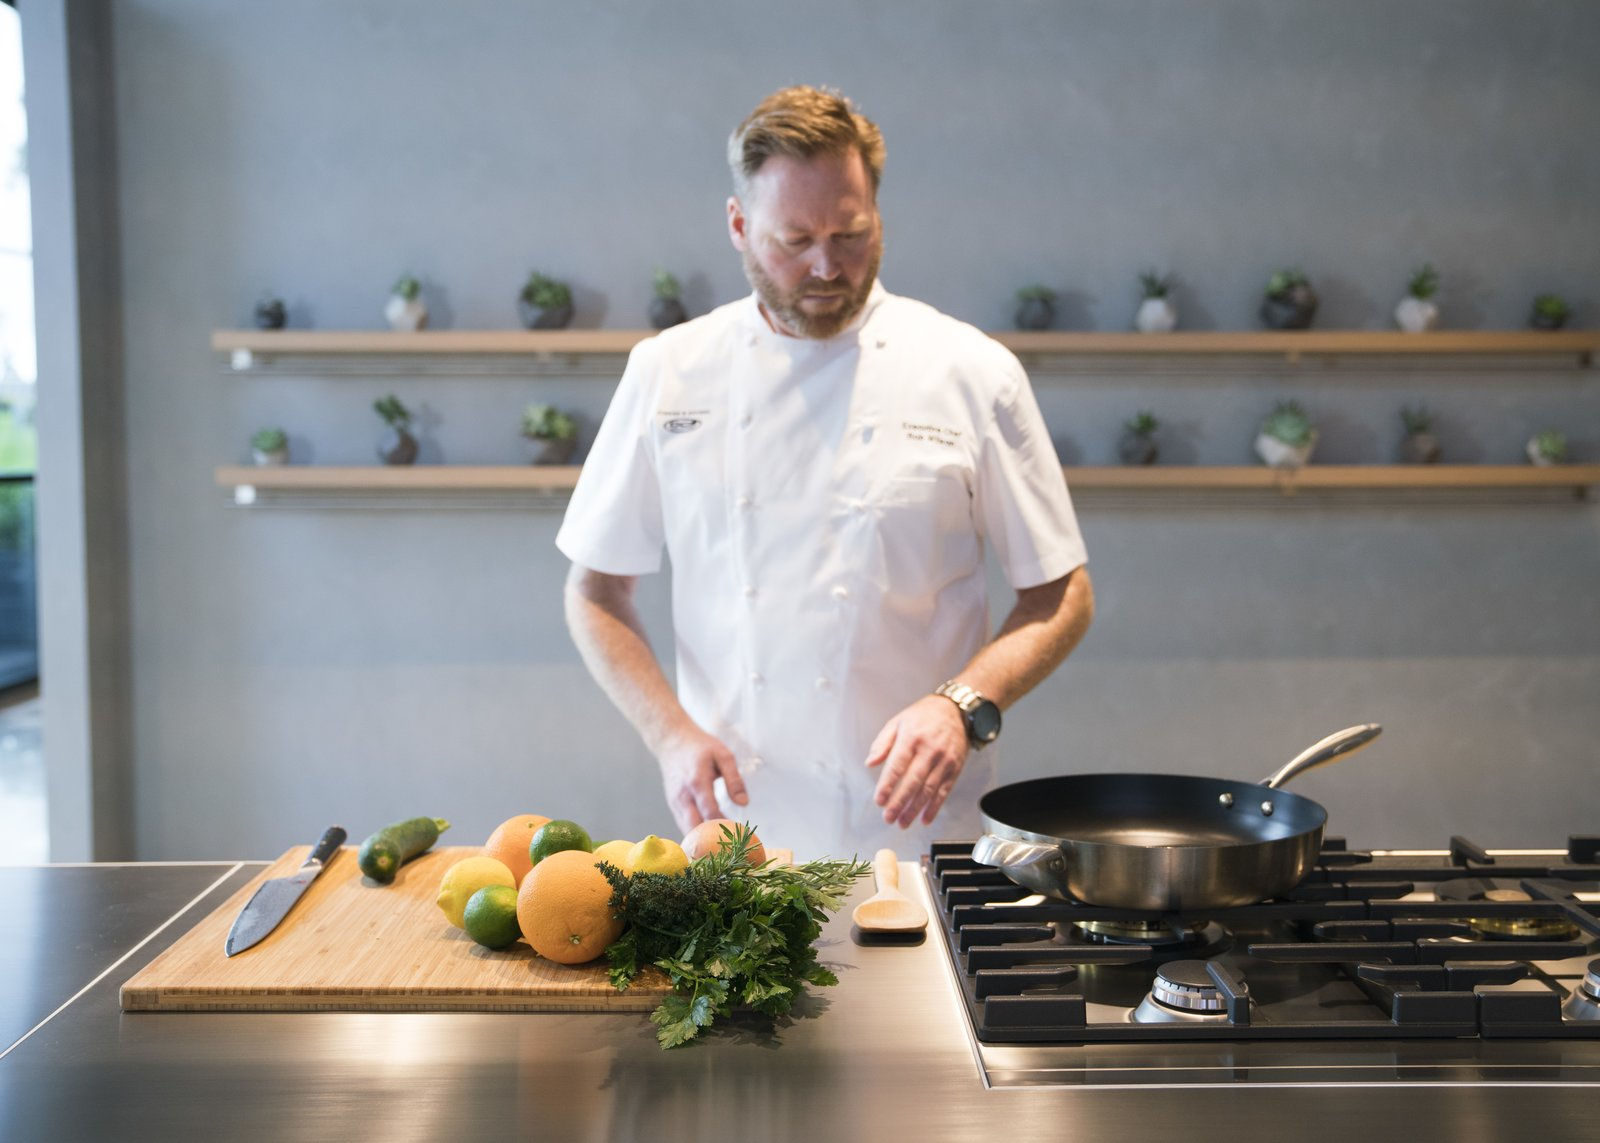 The company's executive chef is on-site to prepare fresh, inventive dishes and demonstrate the performance of Fisher & Paykel's well-considered designs.